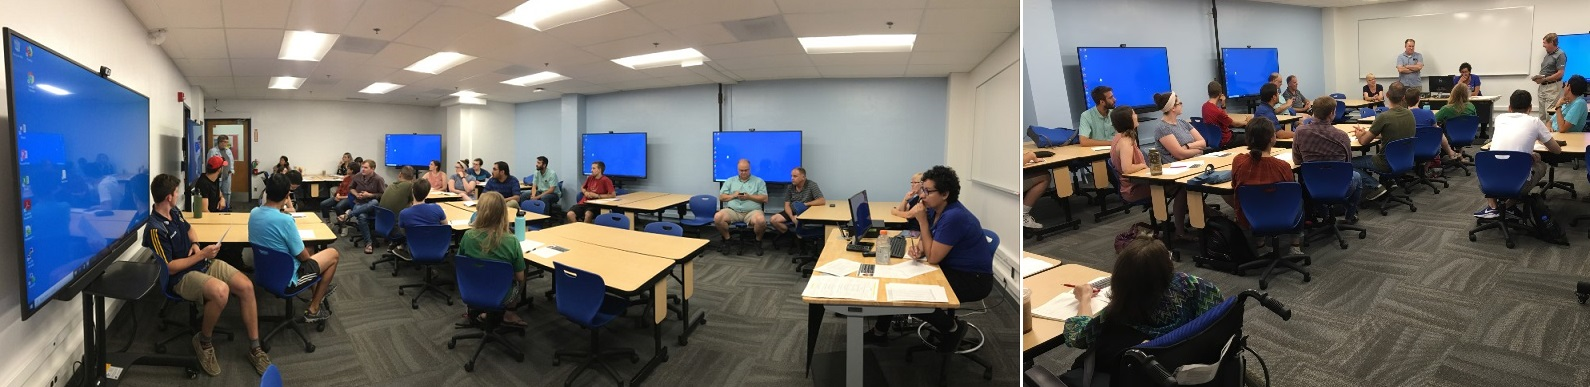 Photo First Meeting in the new Harshbarger 110 Collaborative Learning Space